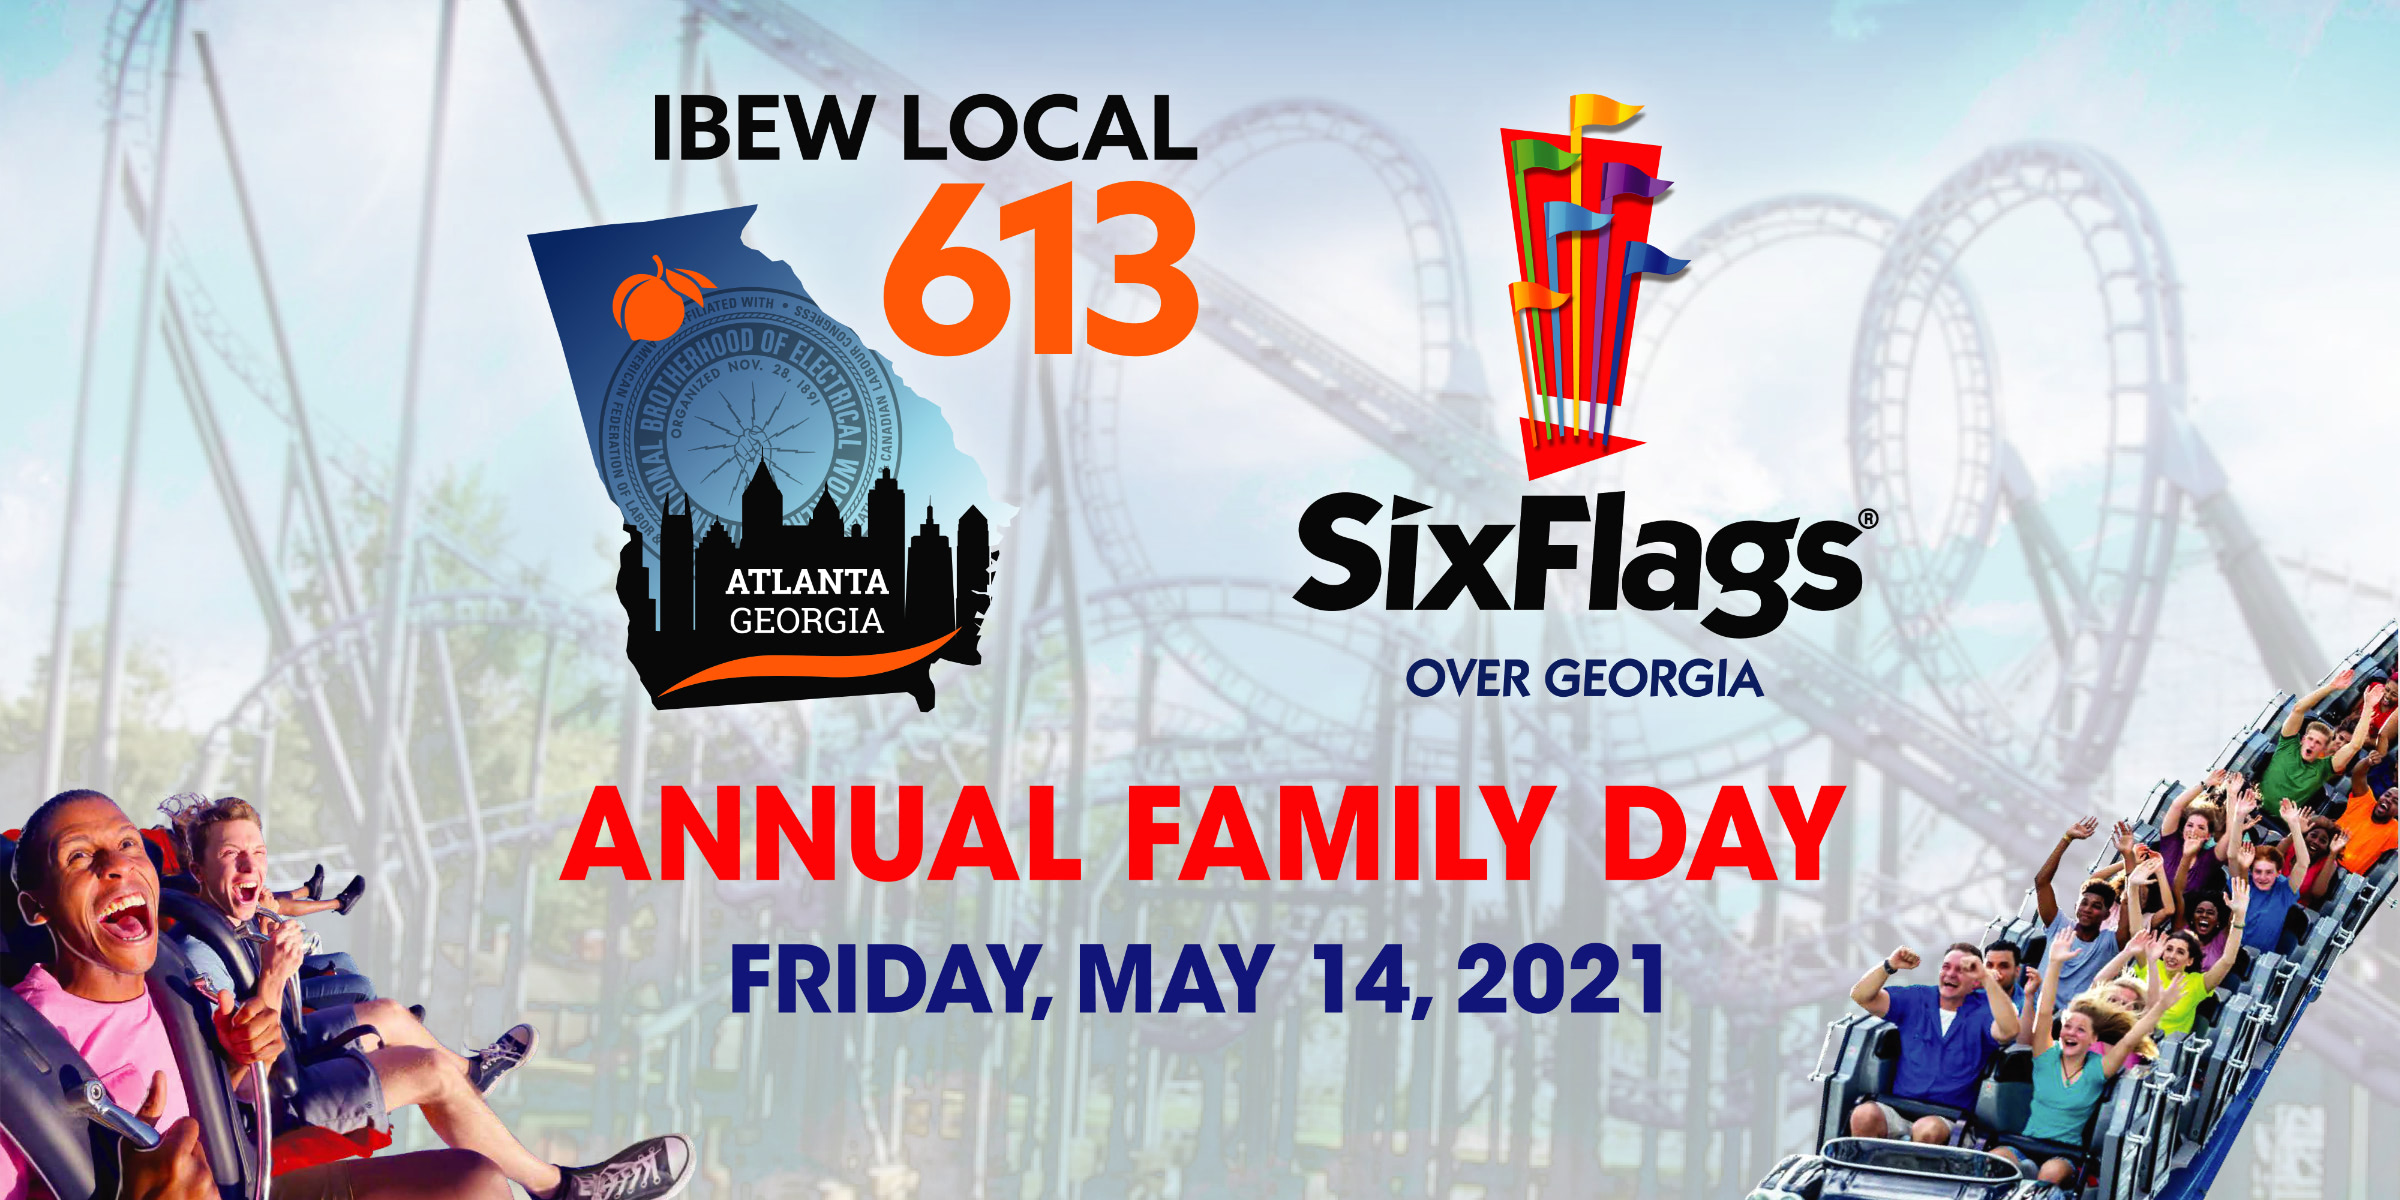 IBEW 613 Six Flags Social Event flyer showing the IBEW 613 logo, roller coasters, and people smiling